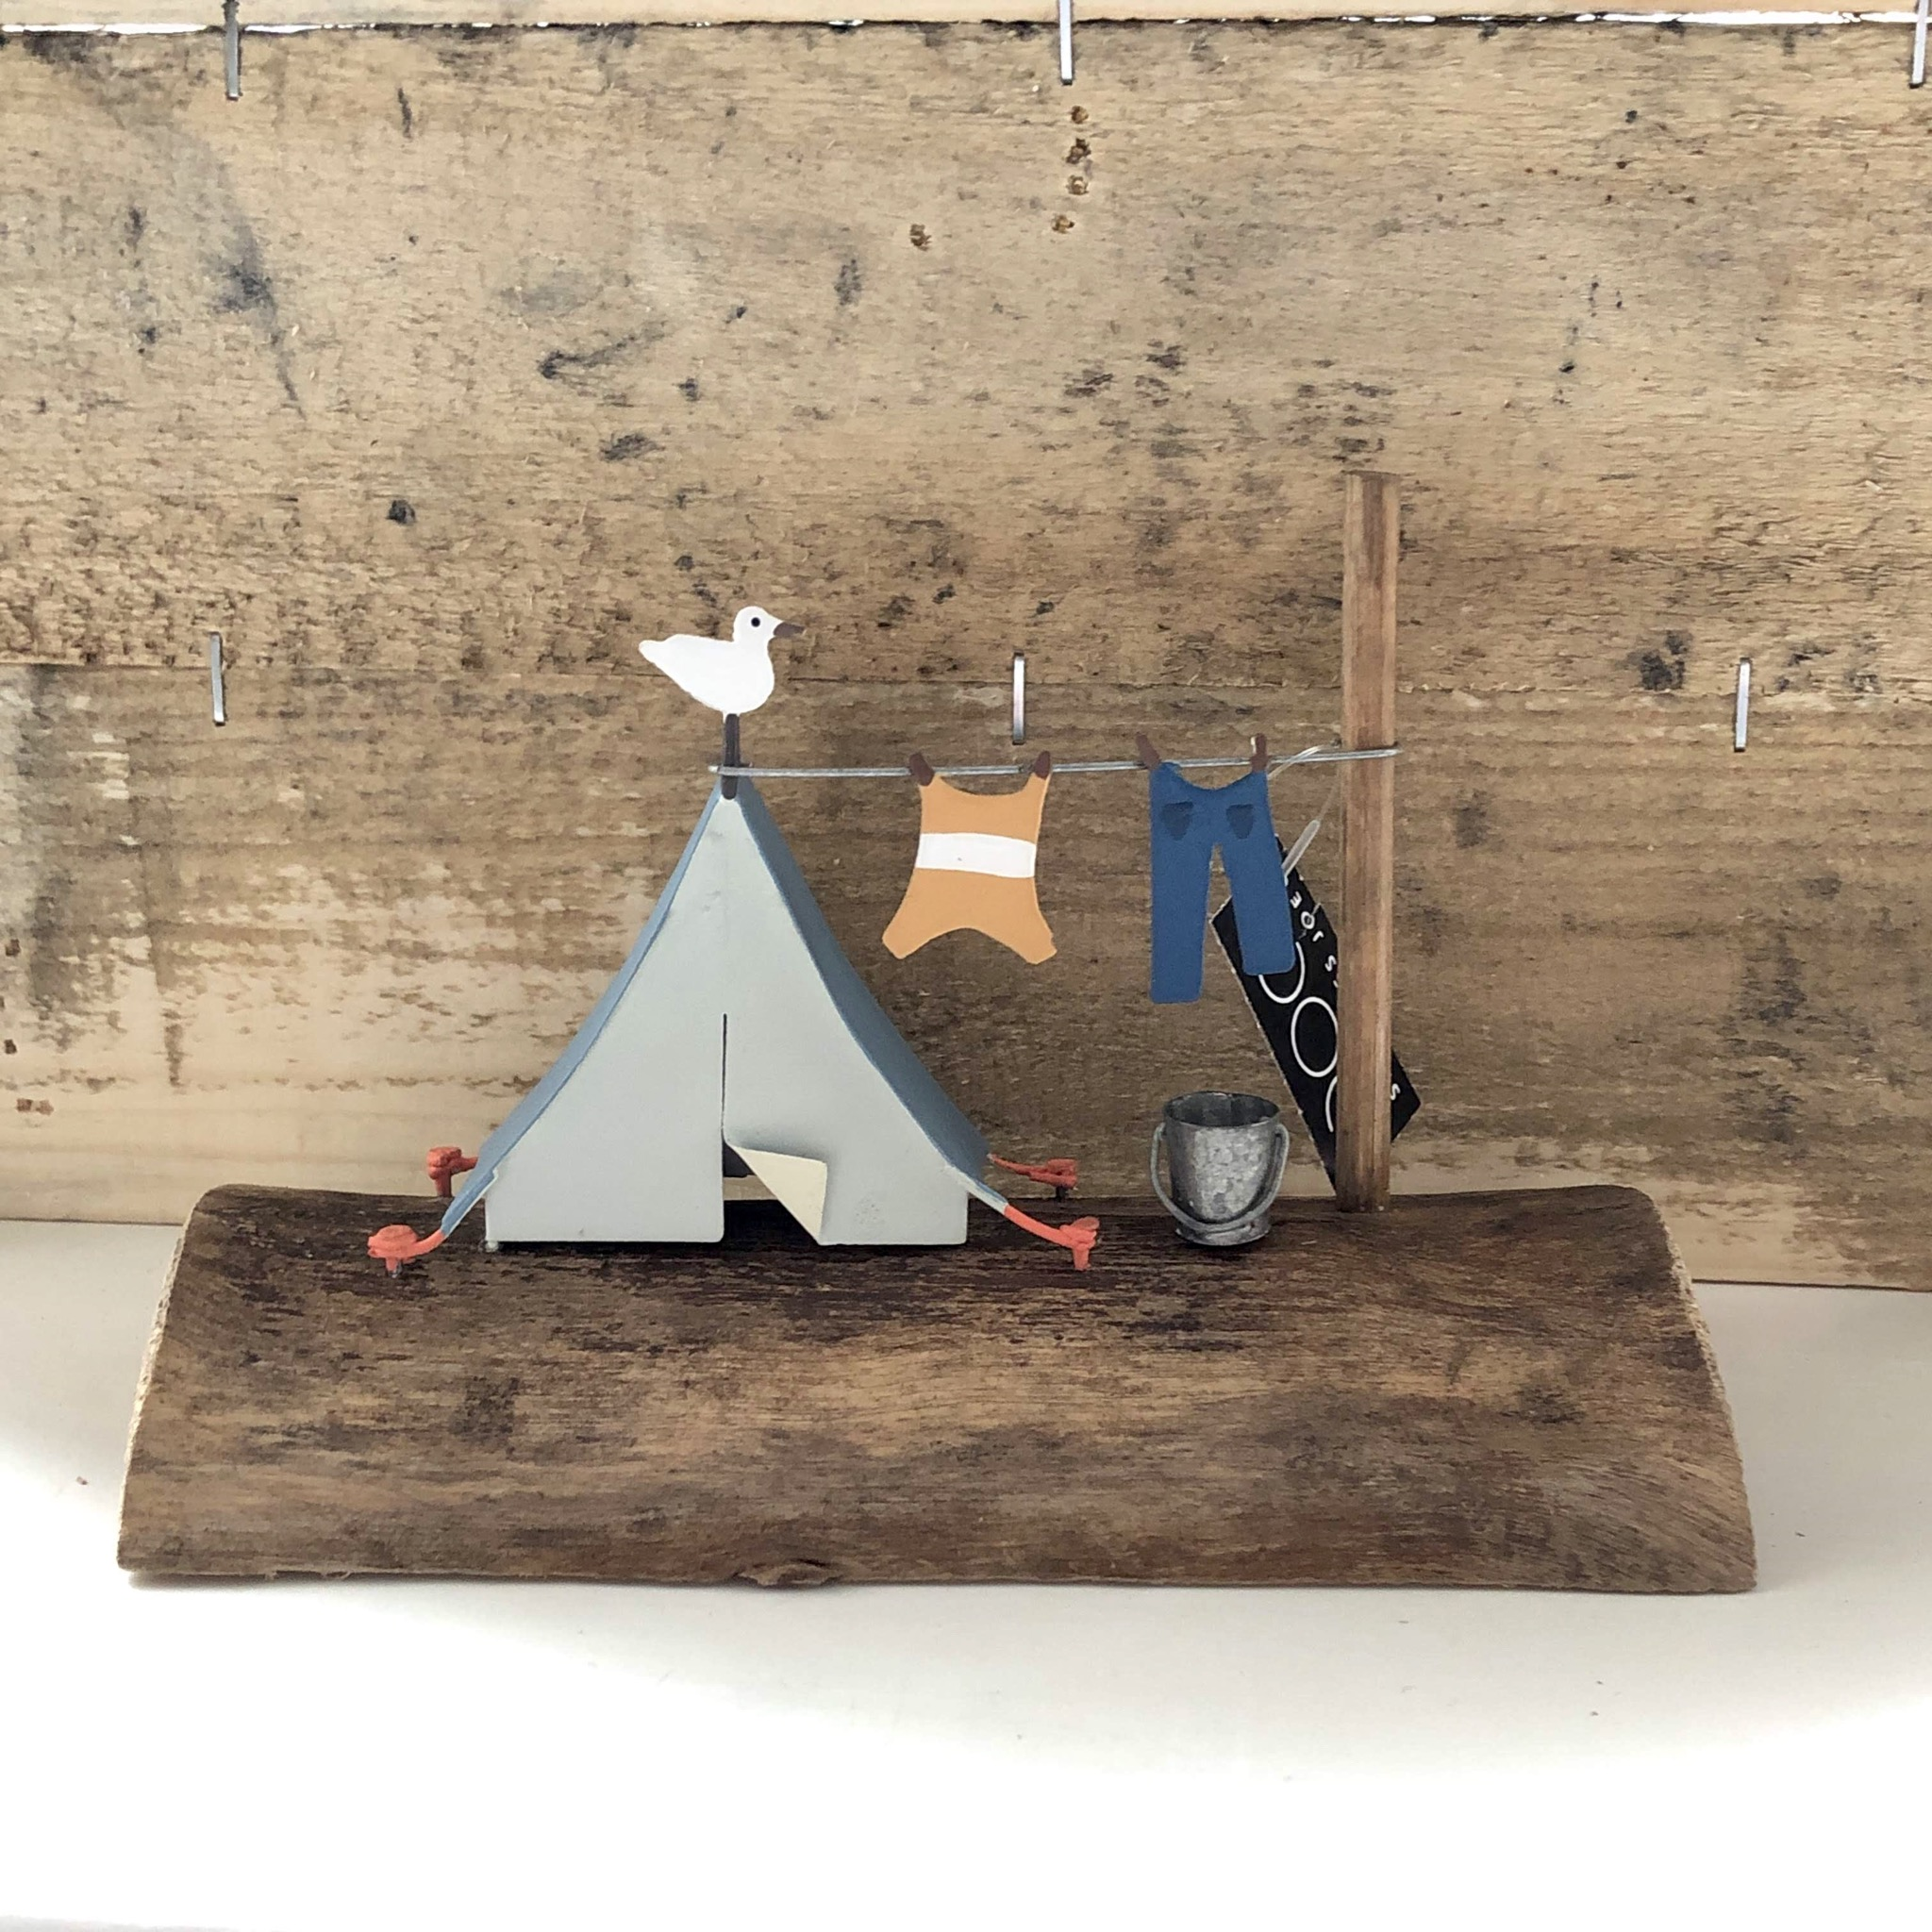 Seaside camp. Retro blue tent ornament by shoeless joe